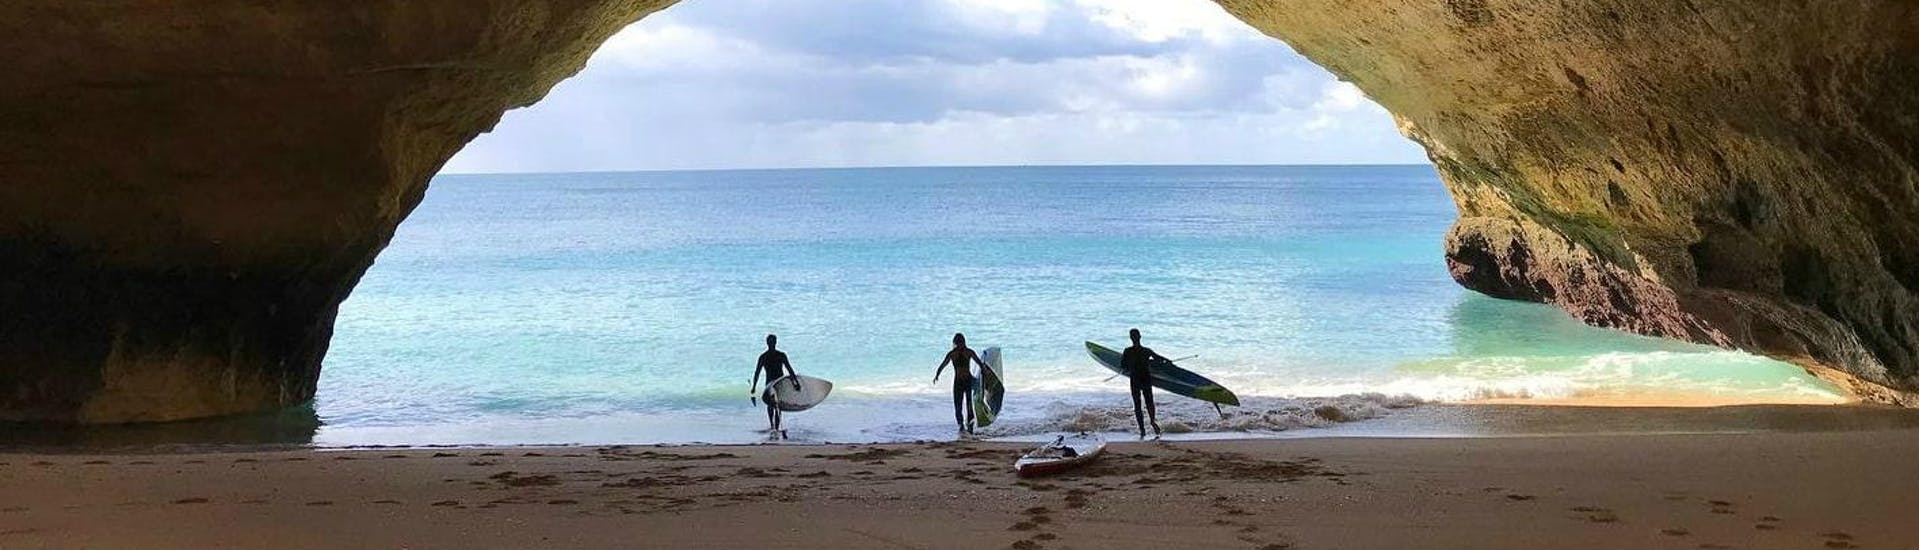 Guided Stand Up Paddle Tour along the Albufeira Coast